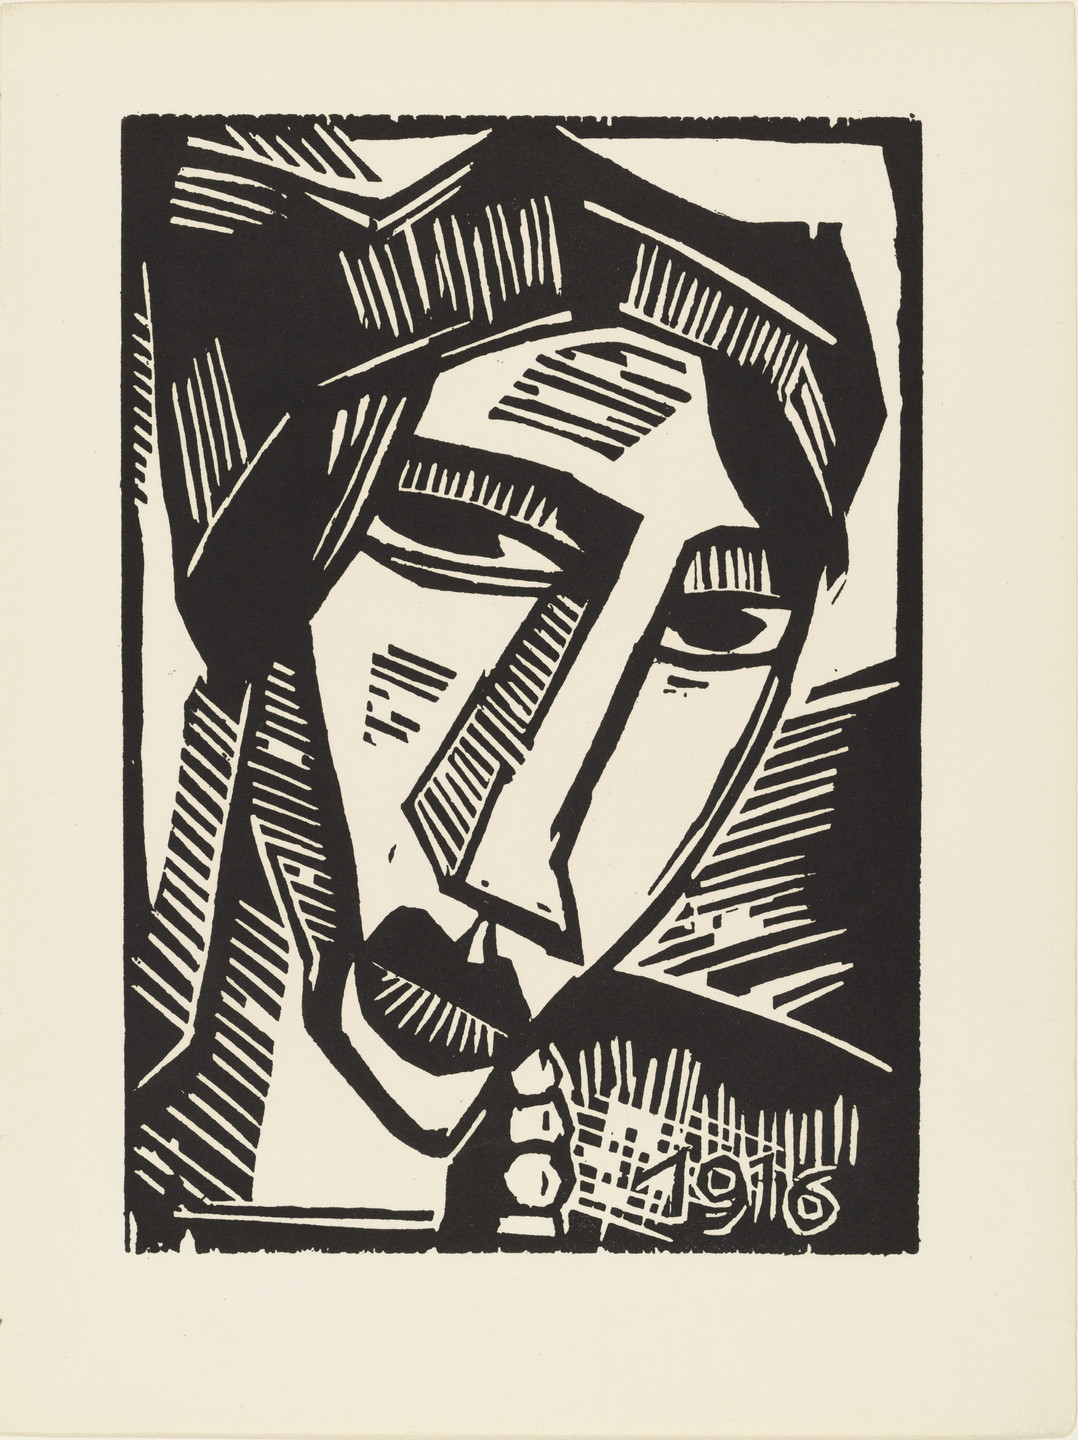 Karl Schmidt-Rottluff. Woman's Head (plate 22) from the illustrated book Deutsche Graphiker der Gegenwart (German Printmakers of Our Time). 1916, published 1920